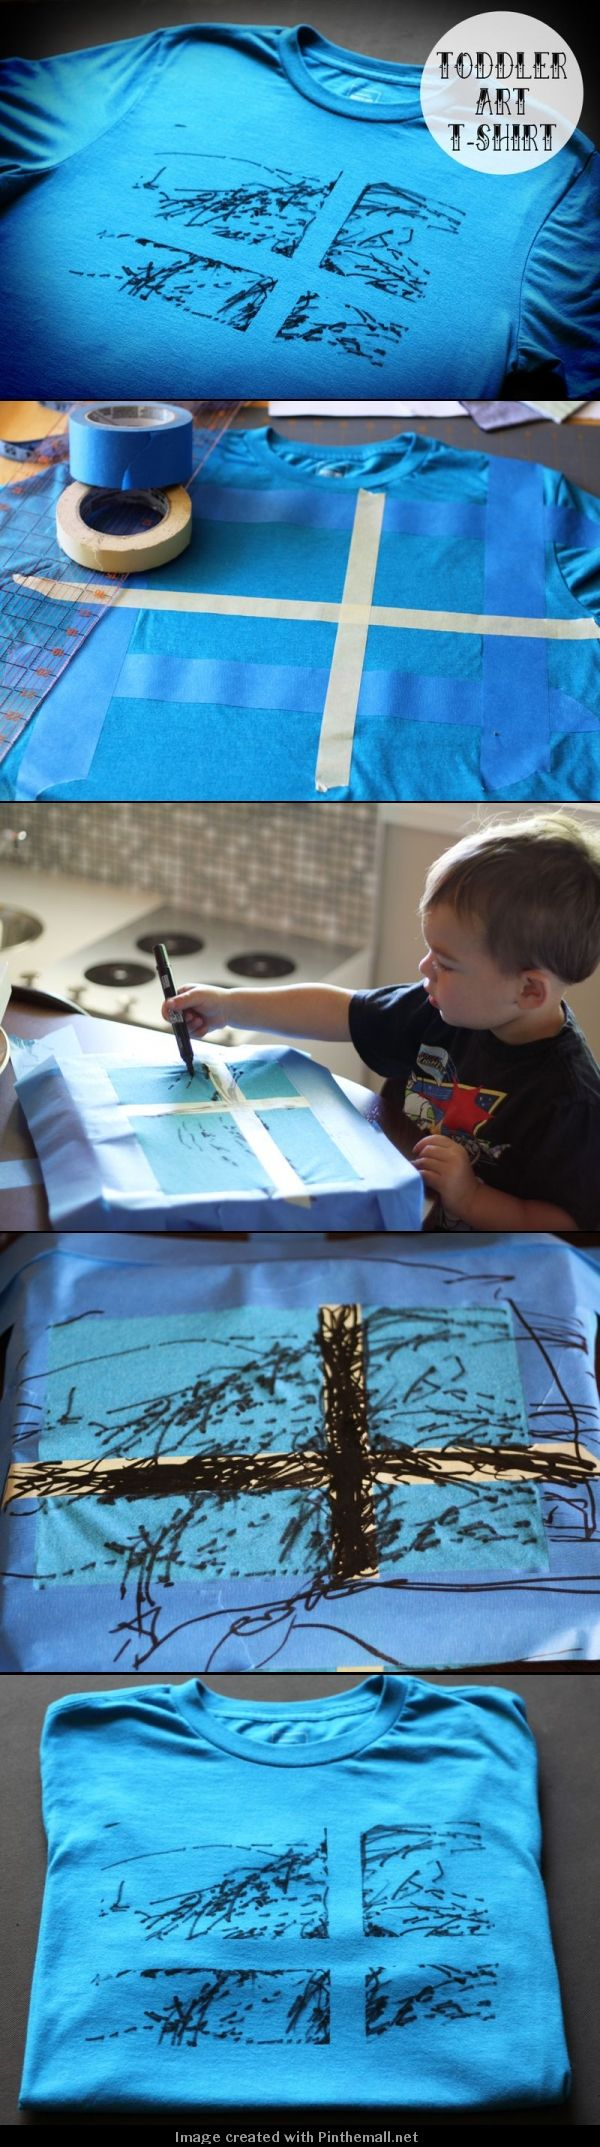 DIY Toddler Art T-Shirt - don't know if this idea would come is use at all Vee?